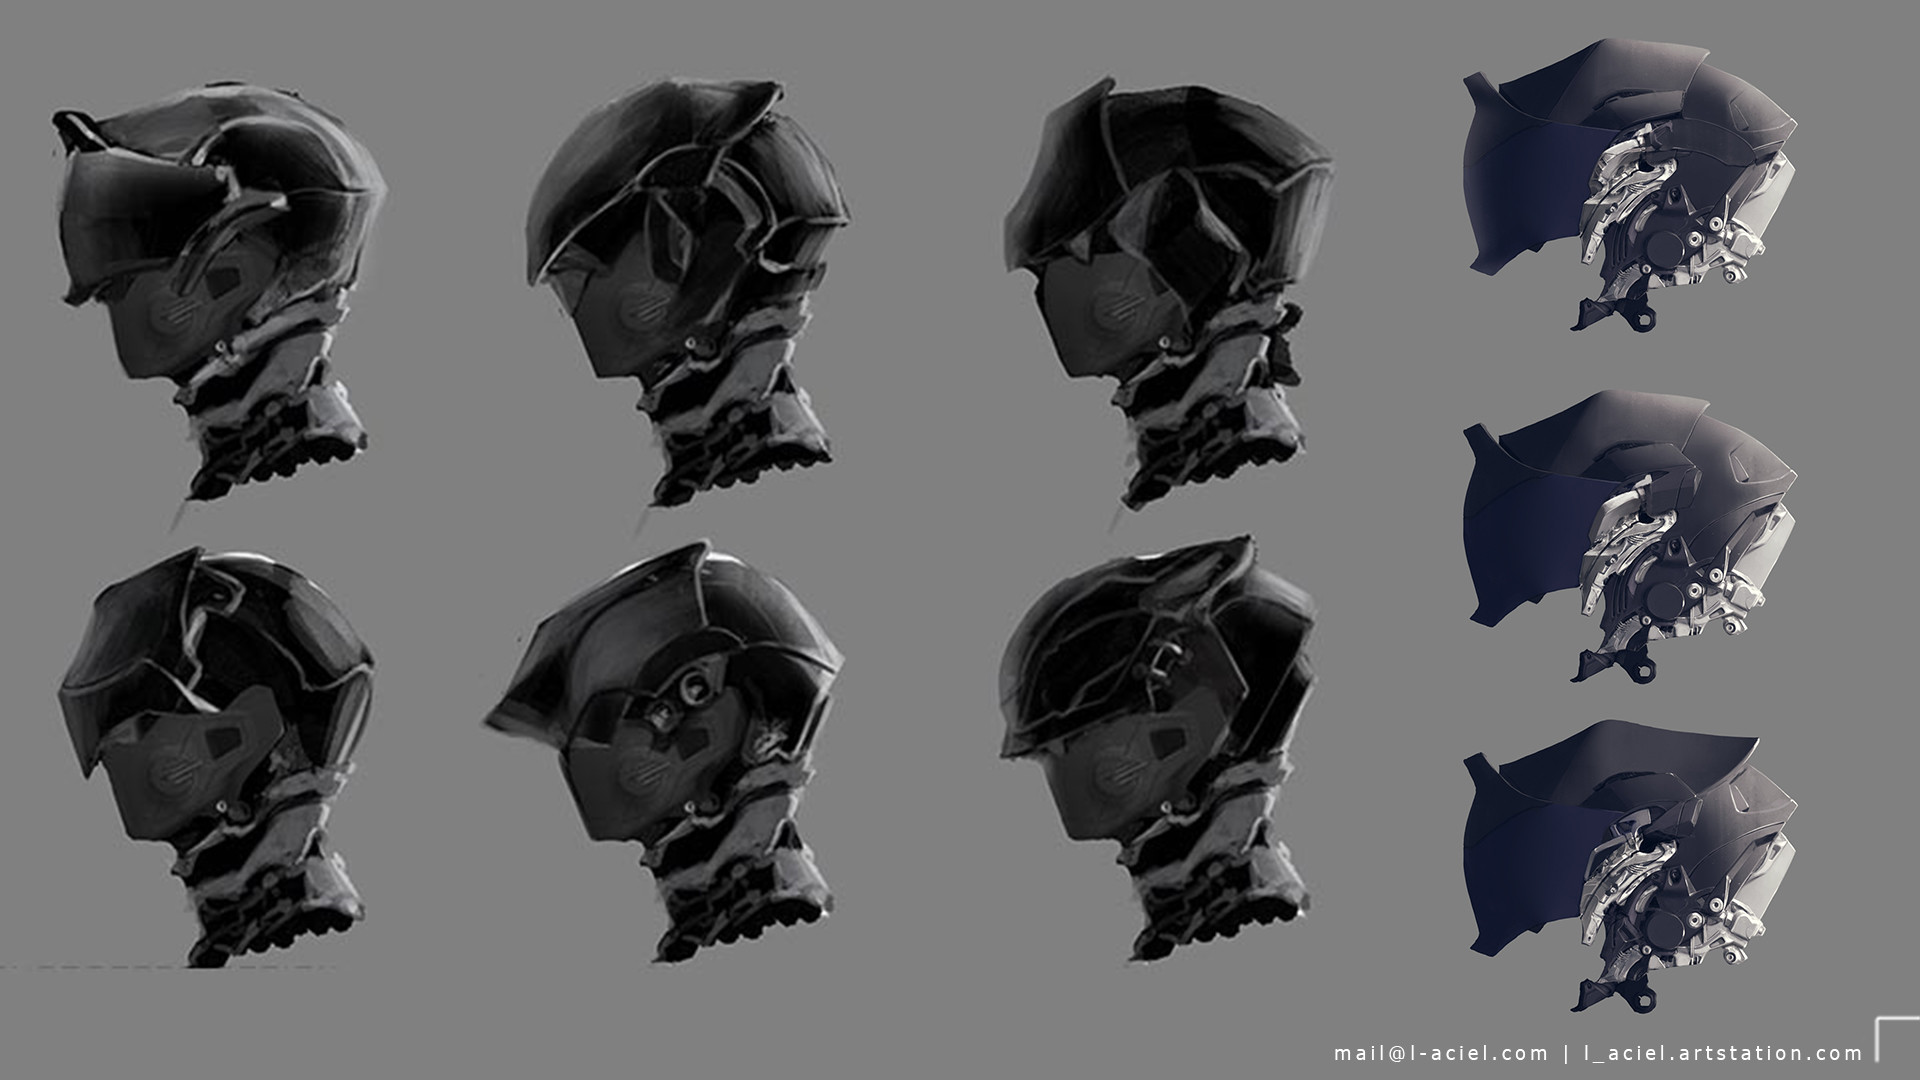 Helmet sketches and variations.